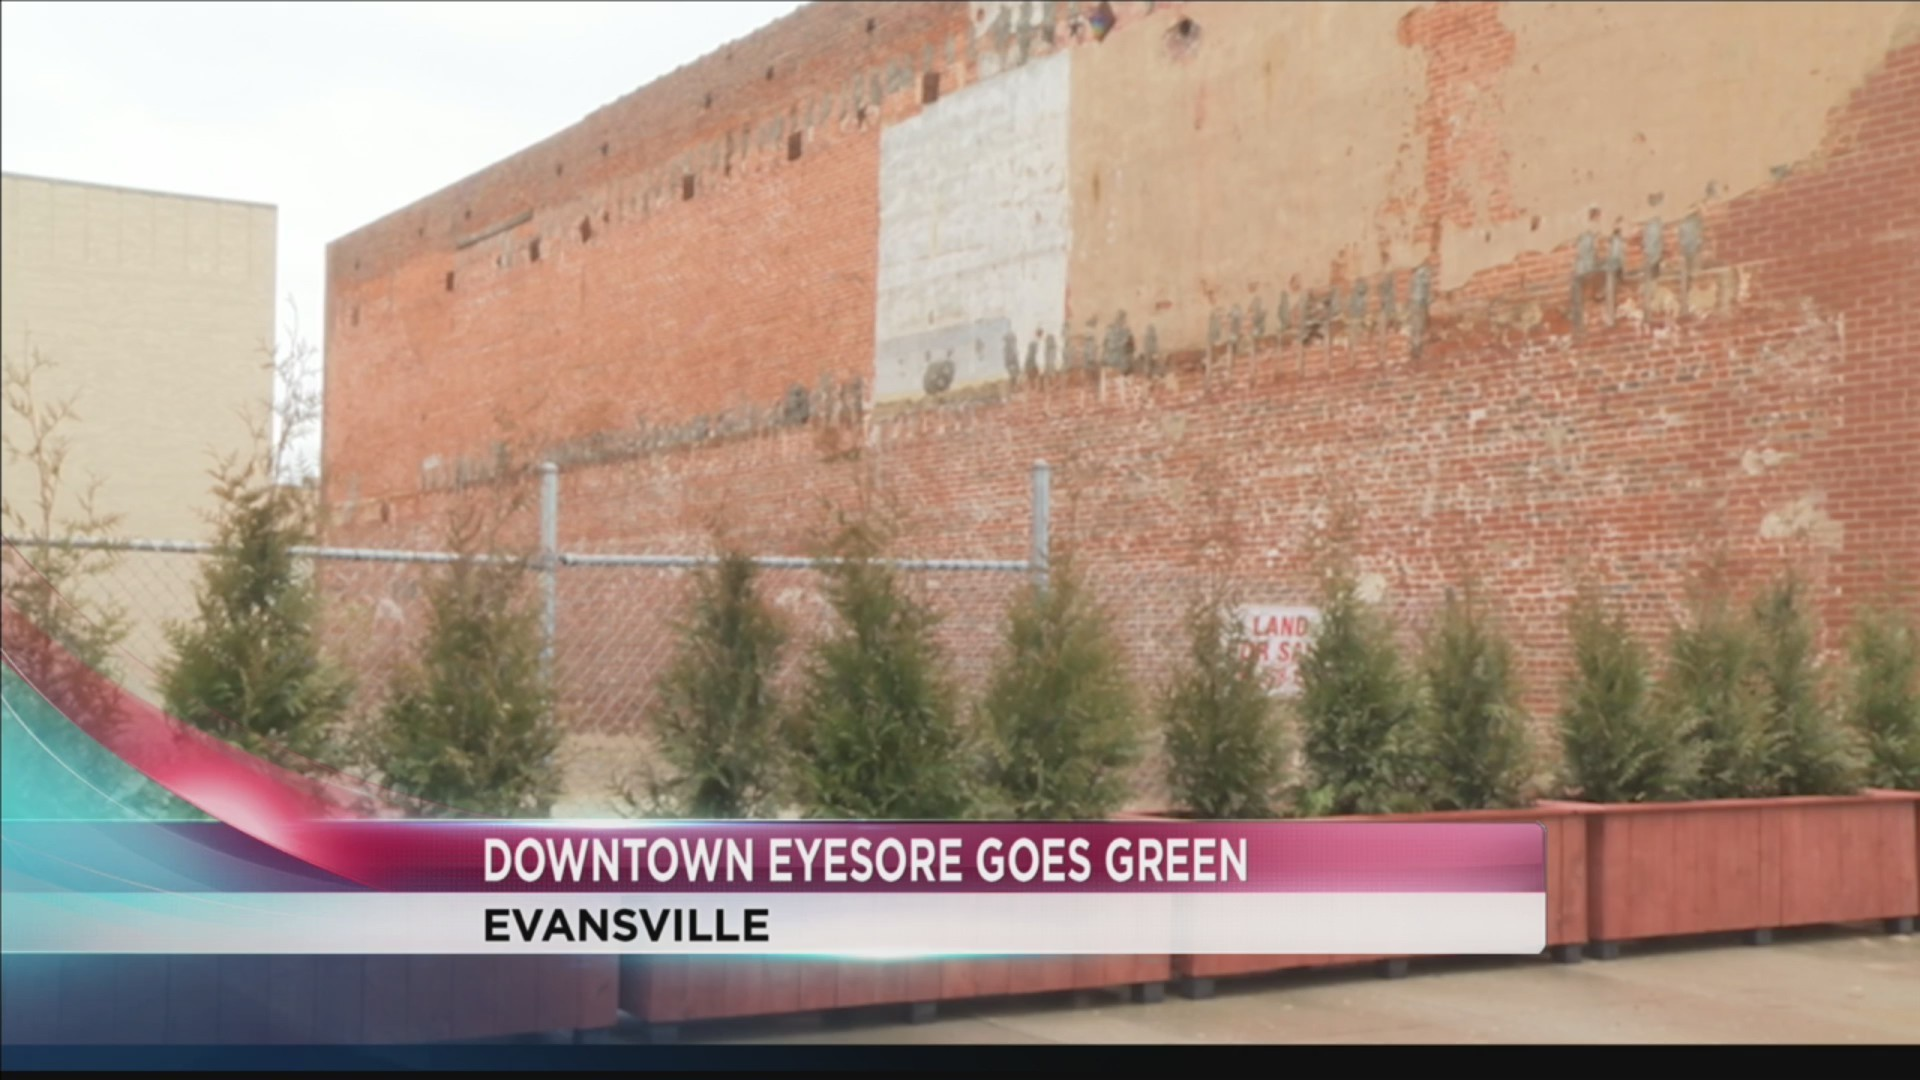 Downtown eyesore goes green